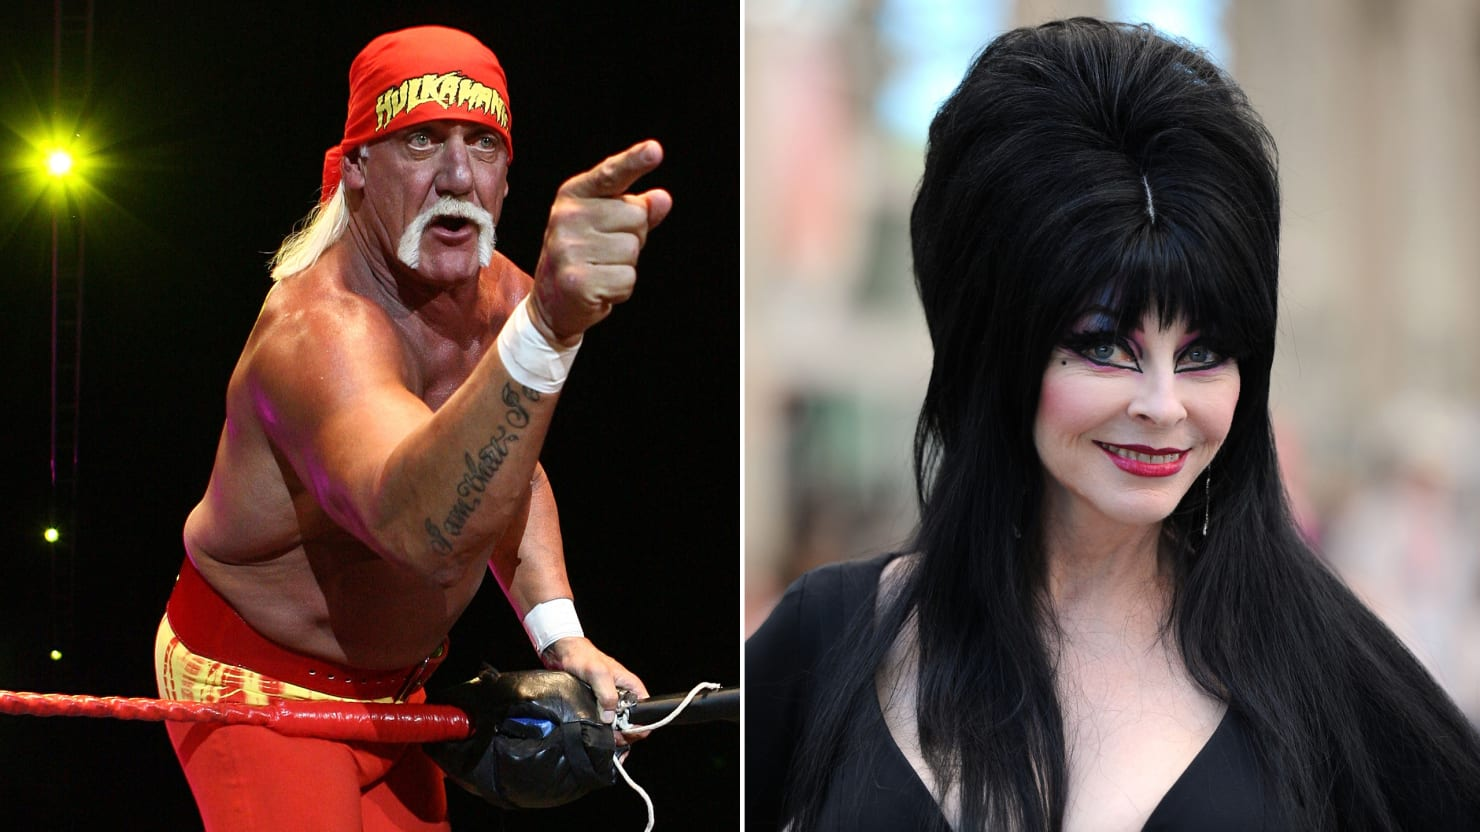 most popular halloween costumes through the years: 1985-2013